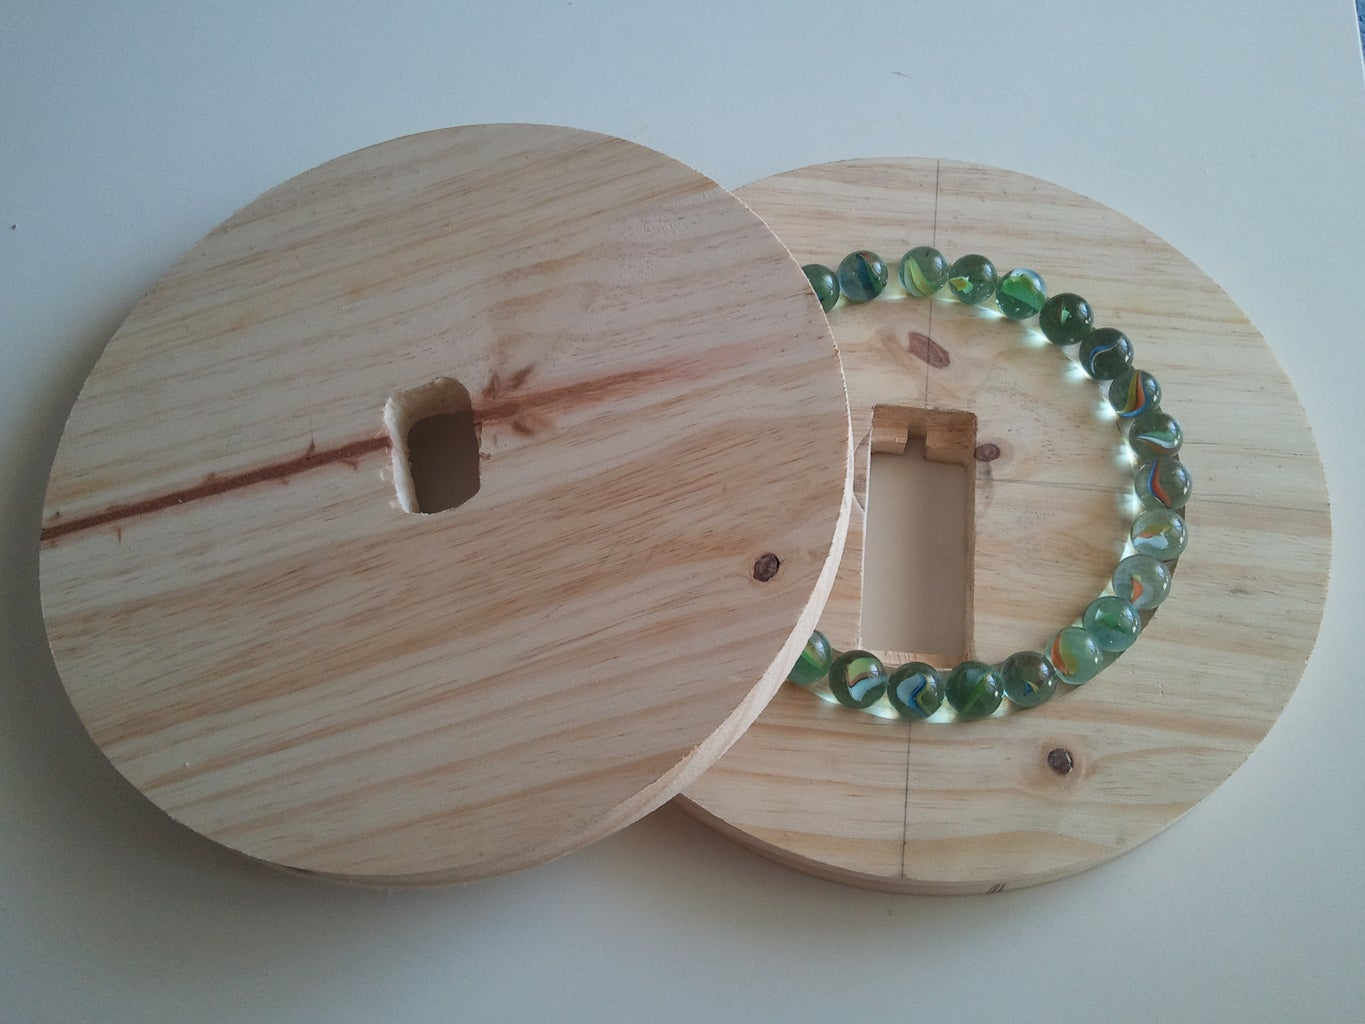 Joining the Wooden Plates Together